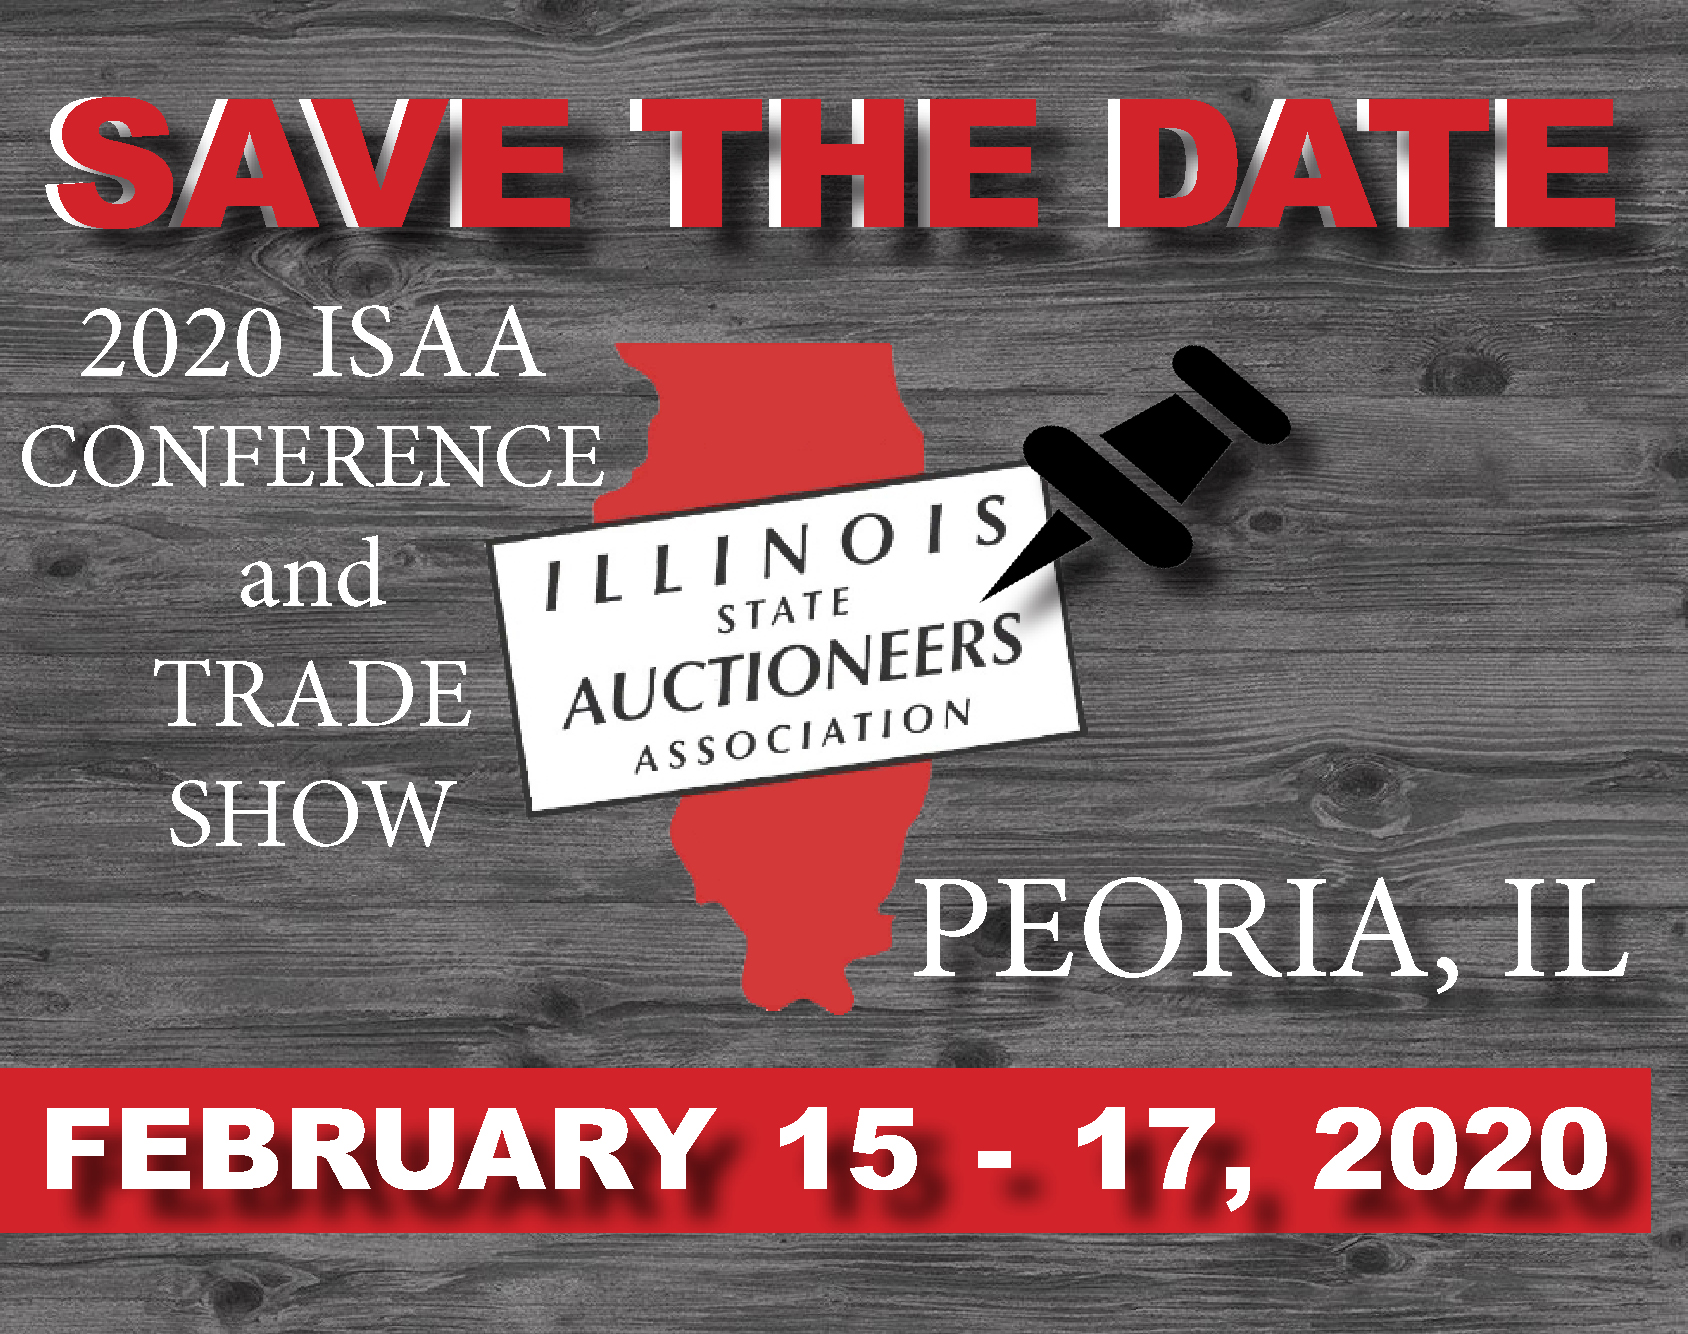 Save the Date | 2020 ISAA Conference & Trade Show | Peoria, IL | February 15-17, 2020